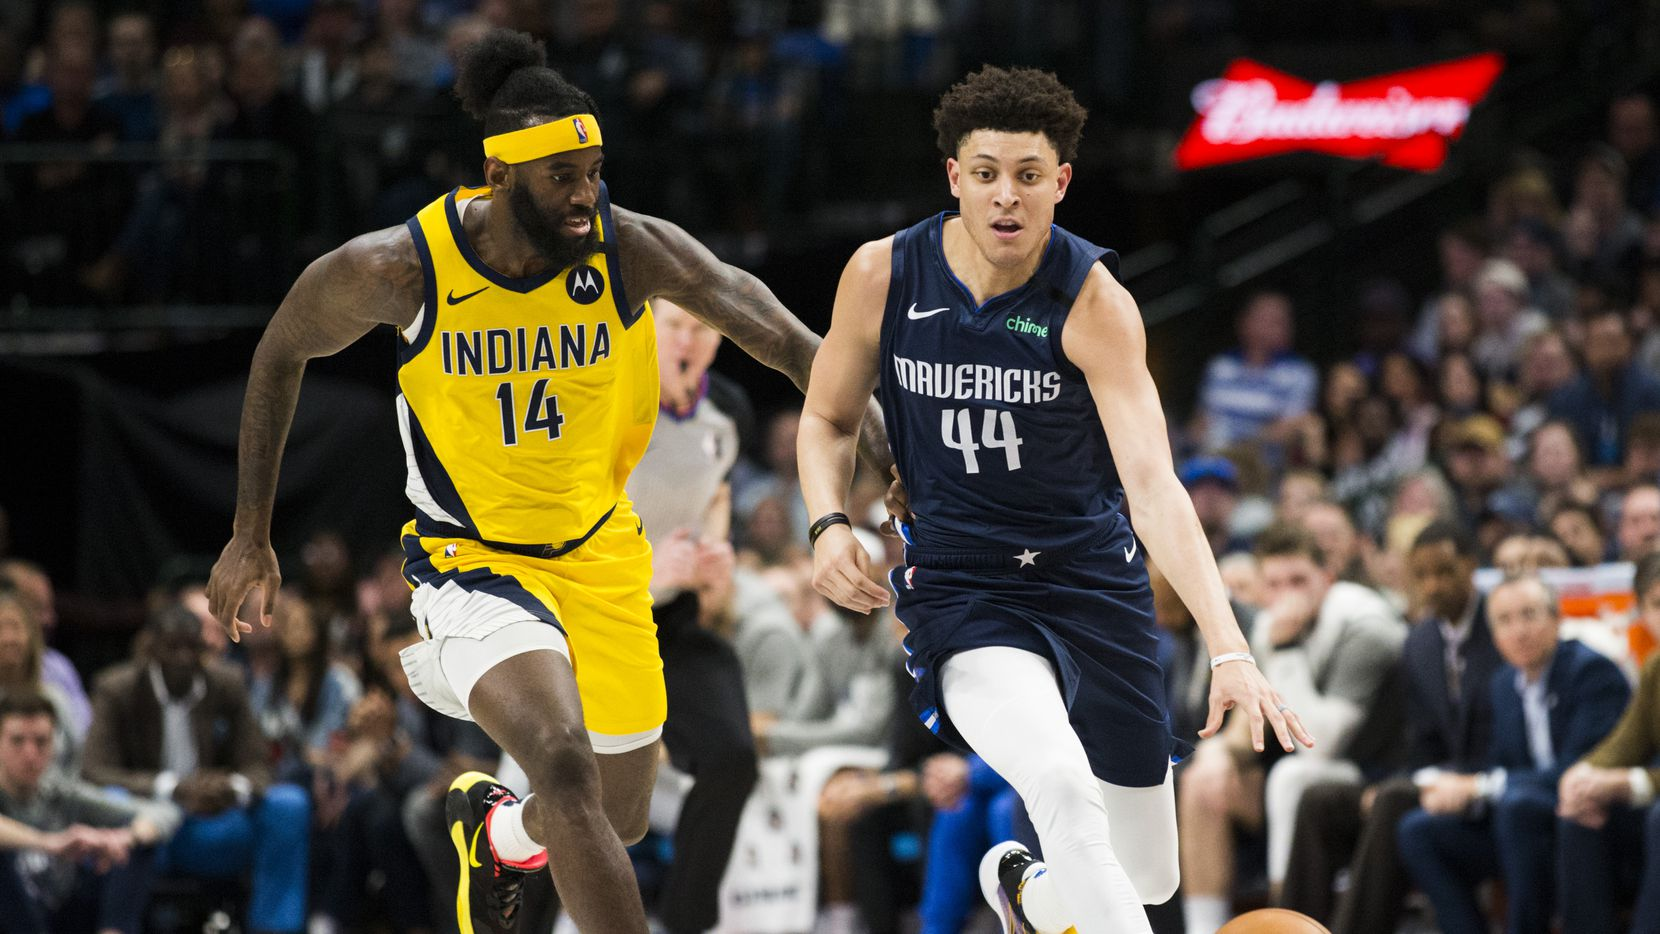 Dallas Mavericks forward Justin Jackson (44) takes the ball down the court ahead of Indiana Pacers forward JaKarr Sampson (14) during the third quarter of an NBA game between the Indiana Pacers and the Dallas Mavericks on Sunday, March 8, 2020 at American Airlines Center in Dallas.